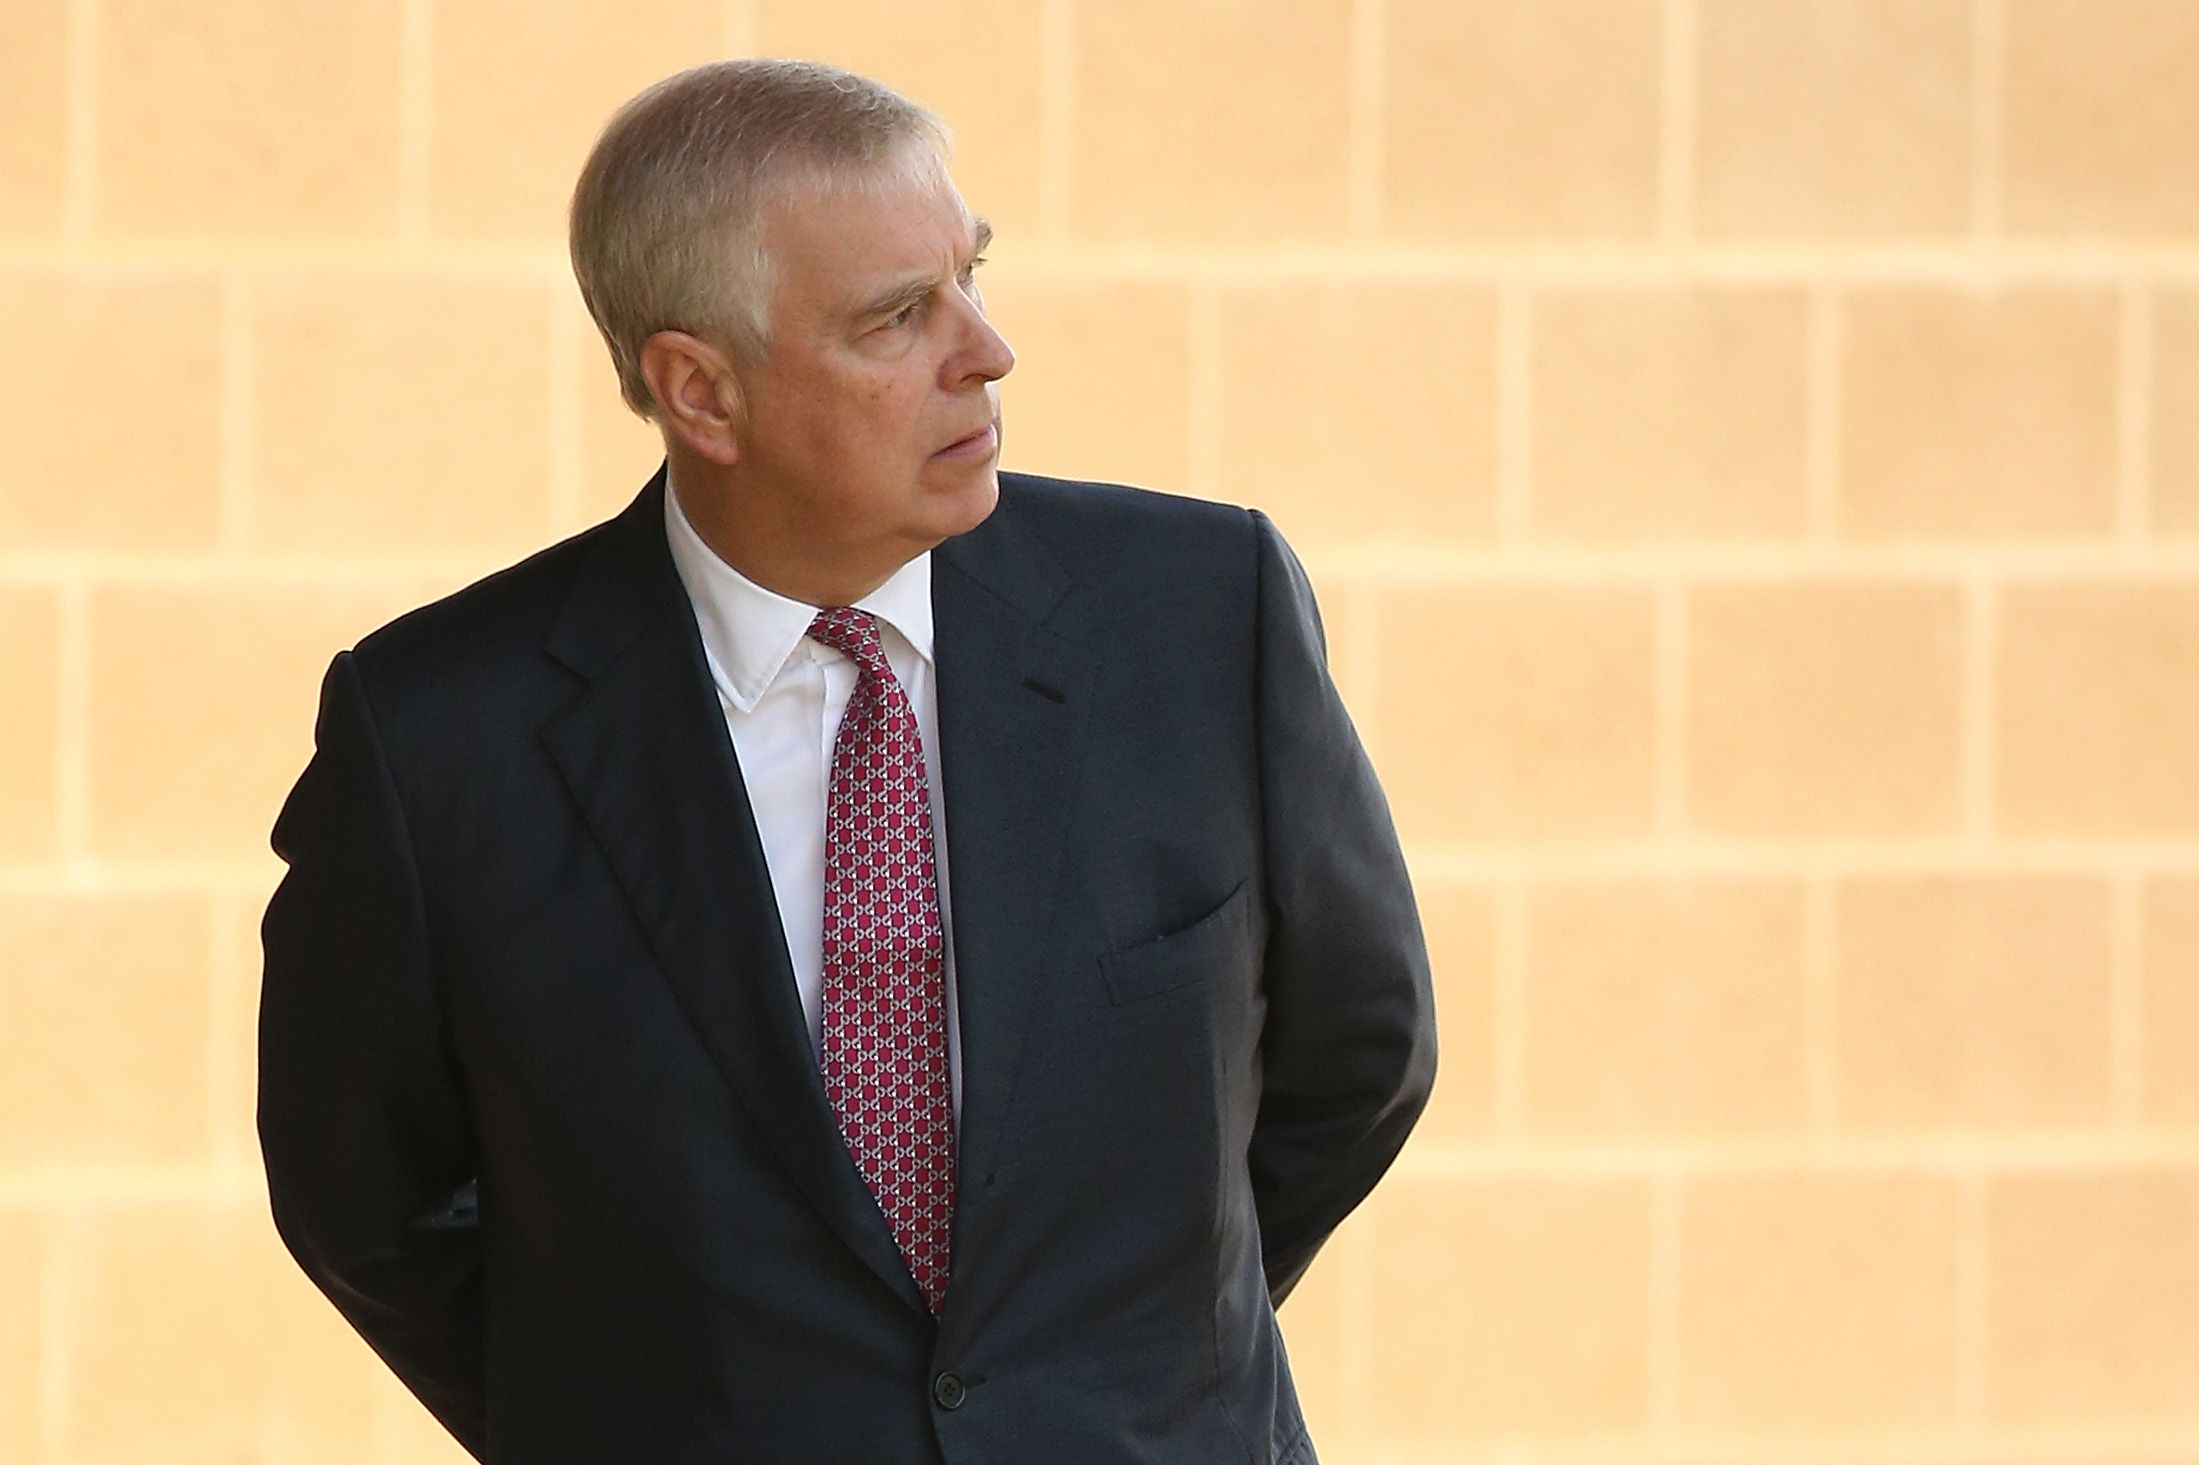 Prince Andrew won't be returning to official royal duties